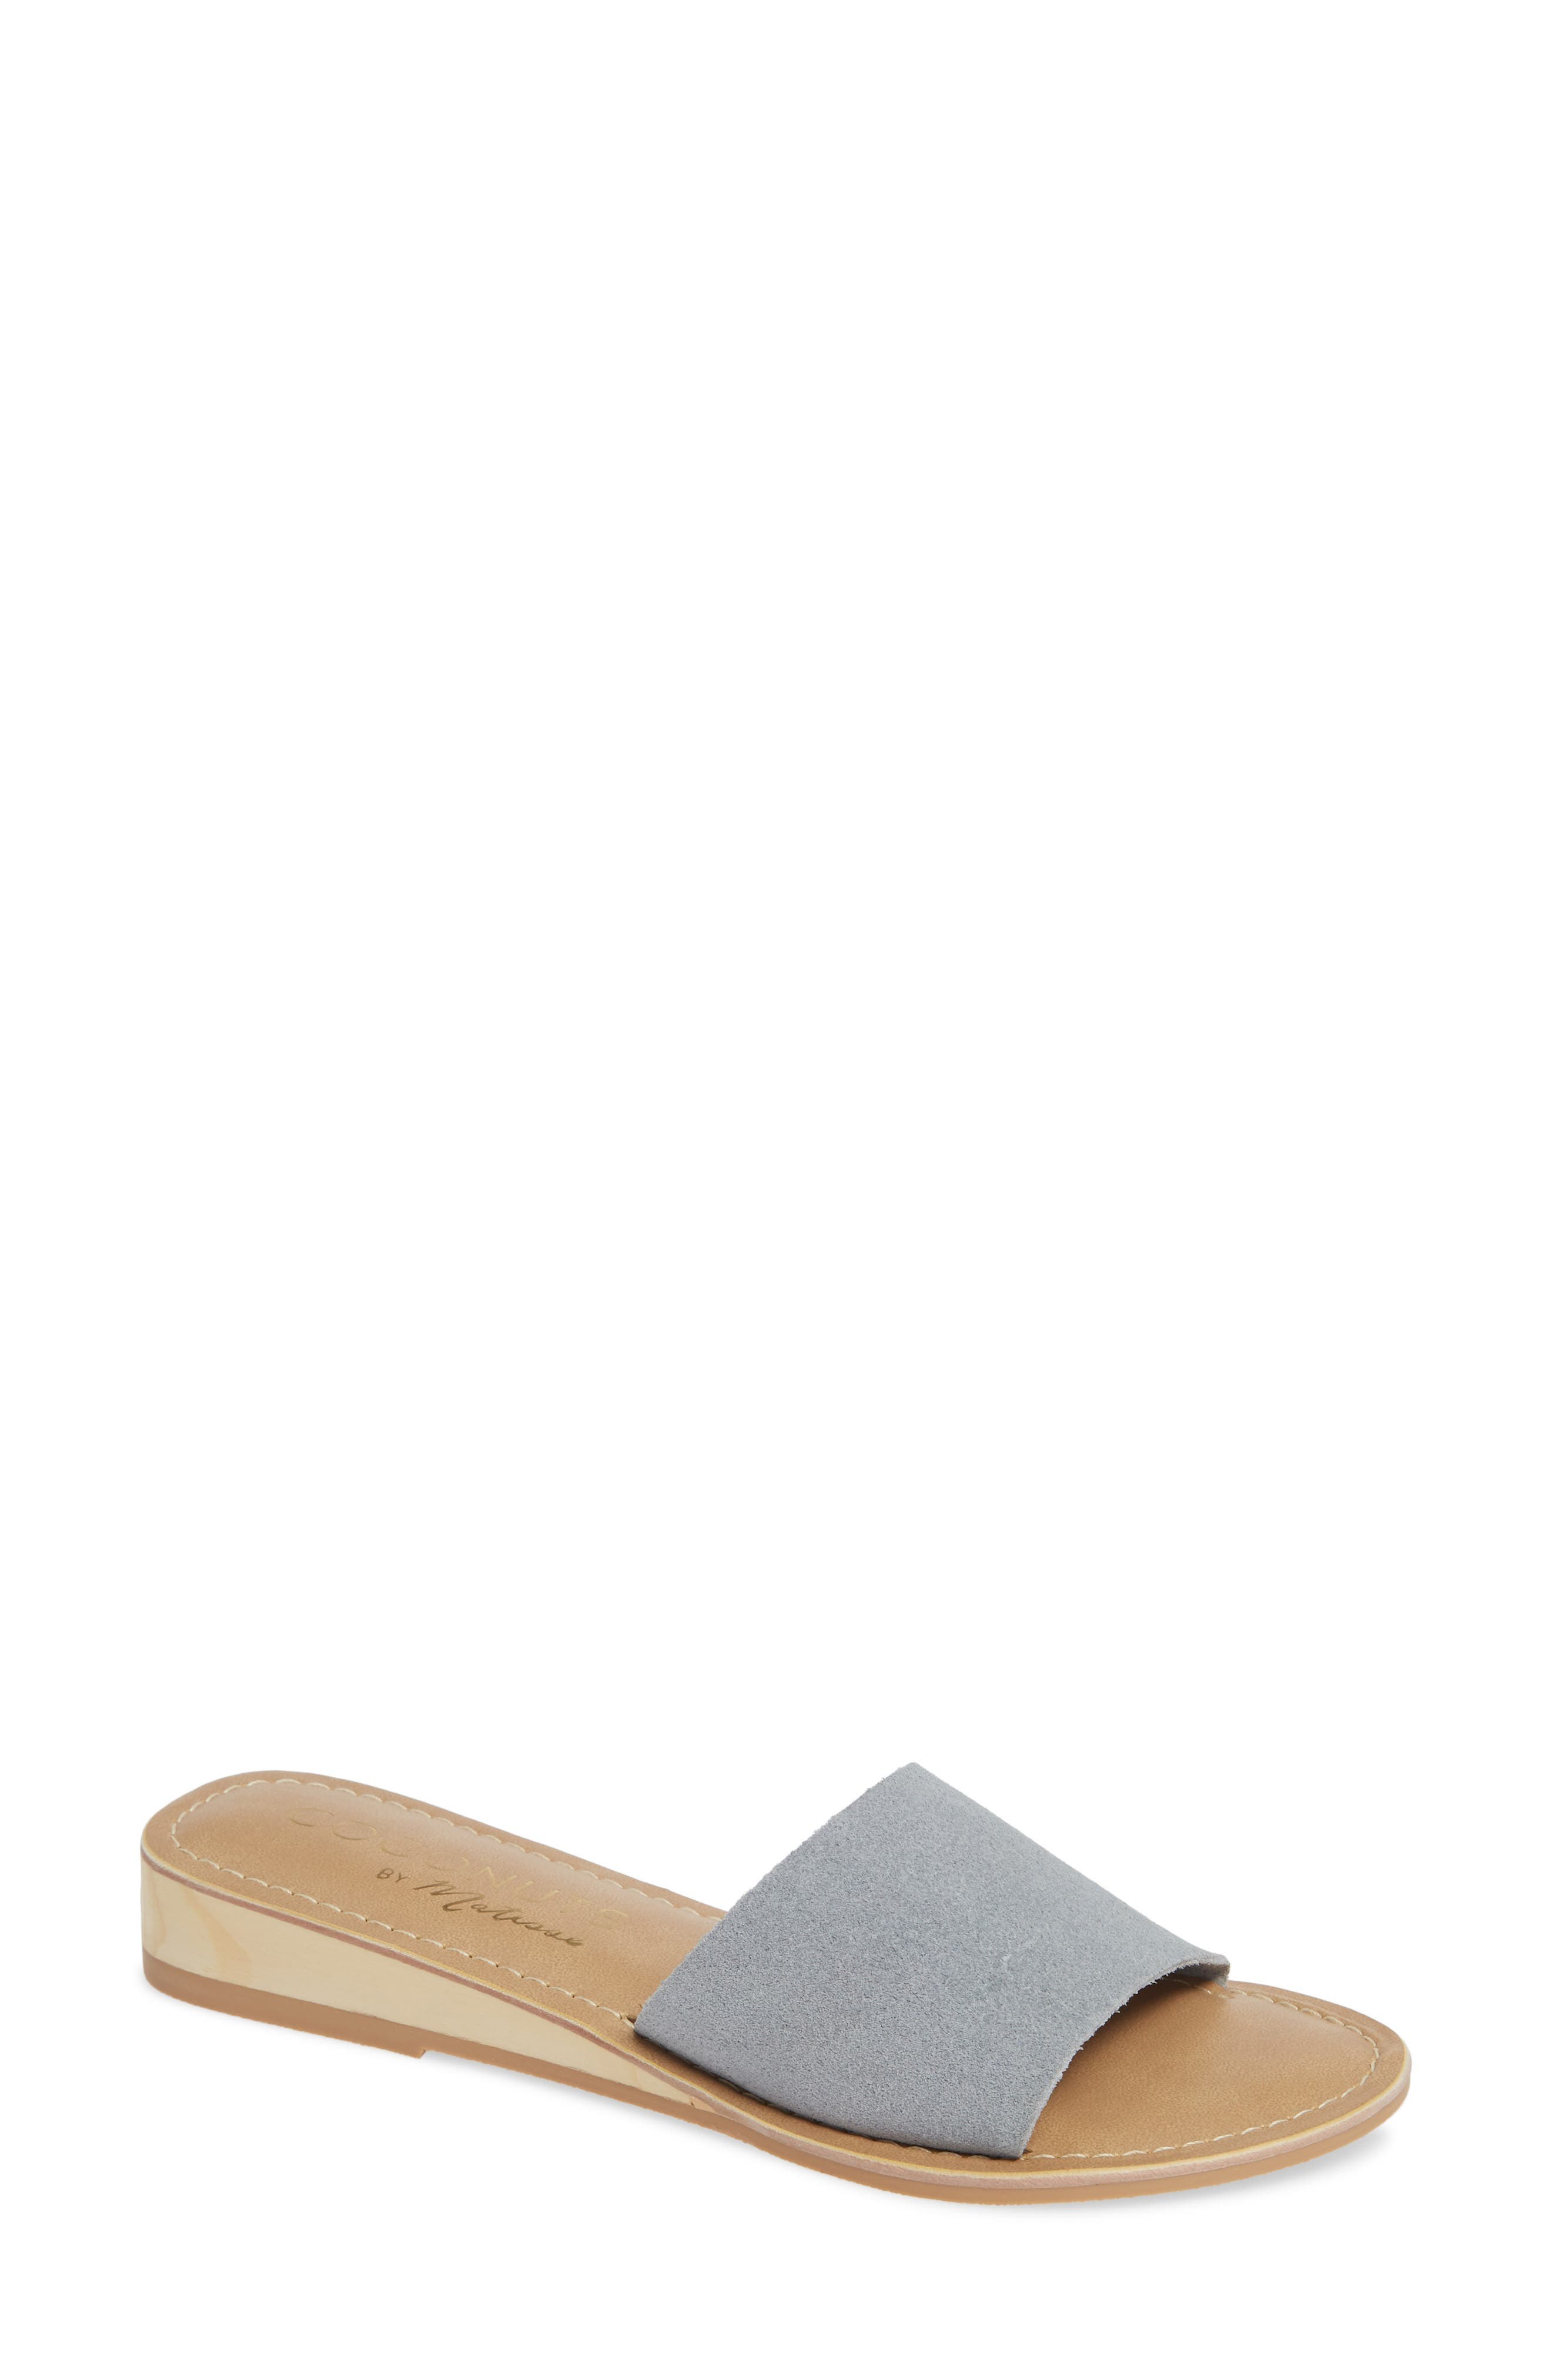 COCONUTS BY MATISSE, Tiki Slide Sandal, Main thumbnail 1, color, GREY SUEDE